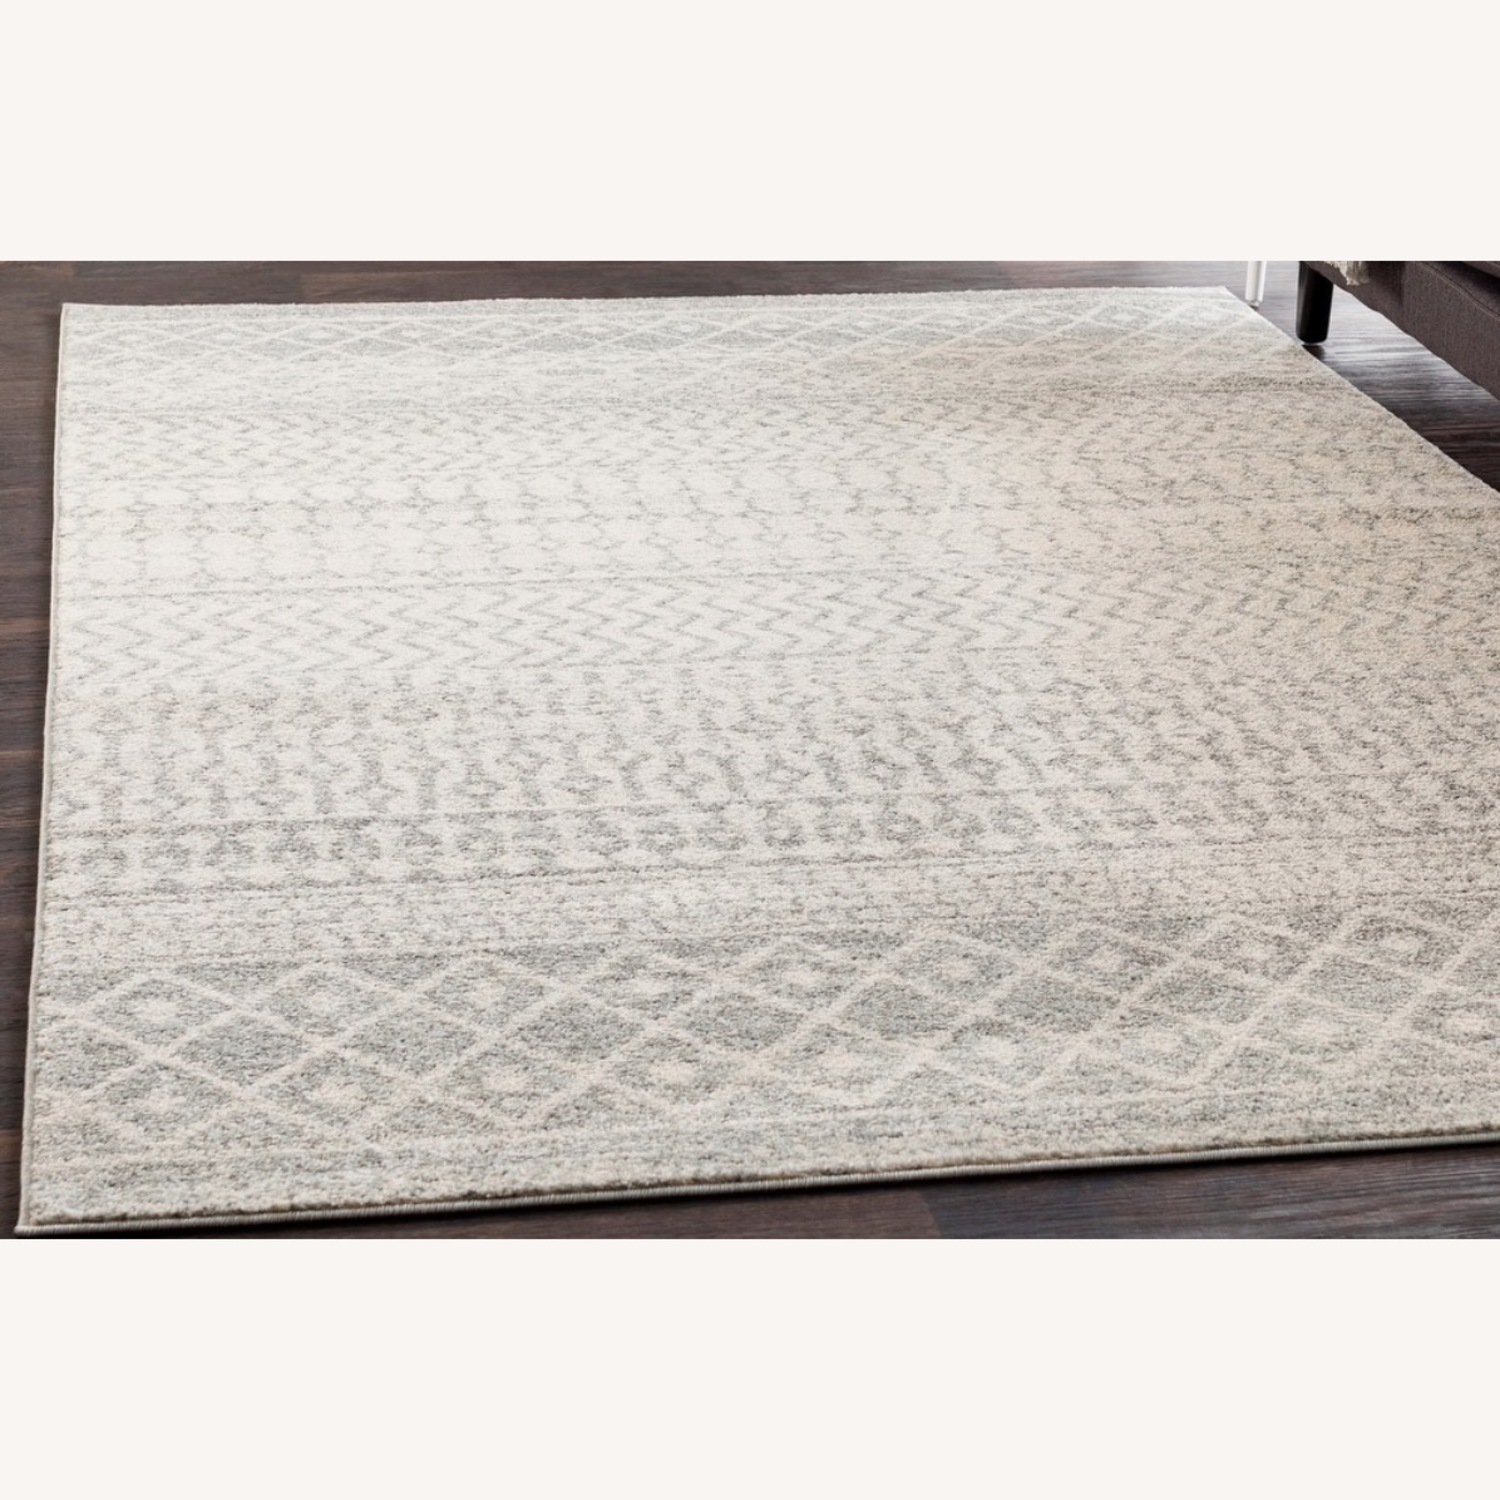 Bohemian Area Rug Antique Silver on White - image-2